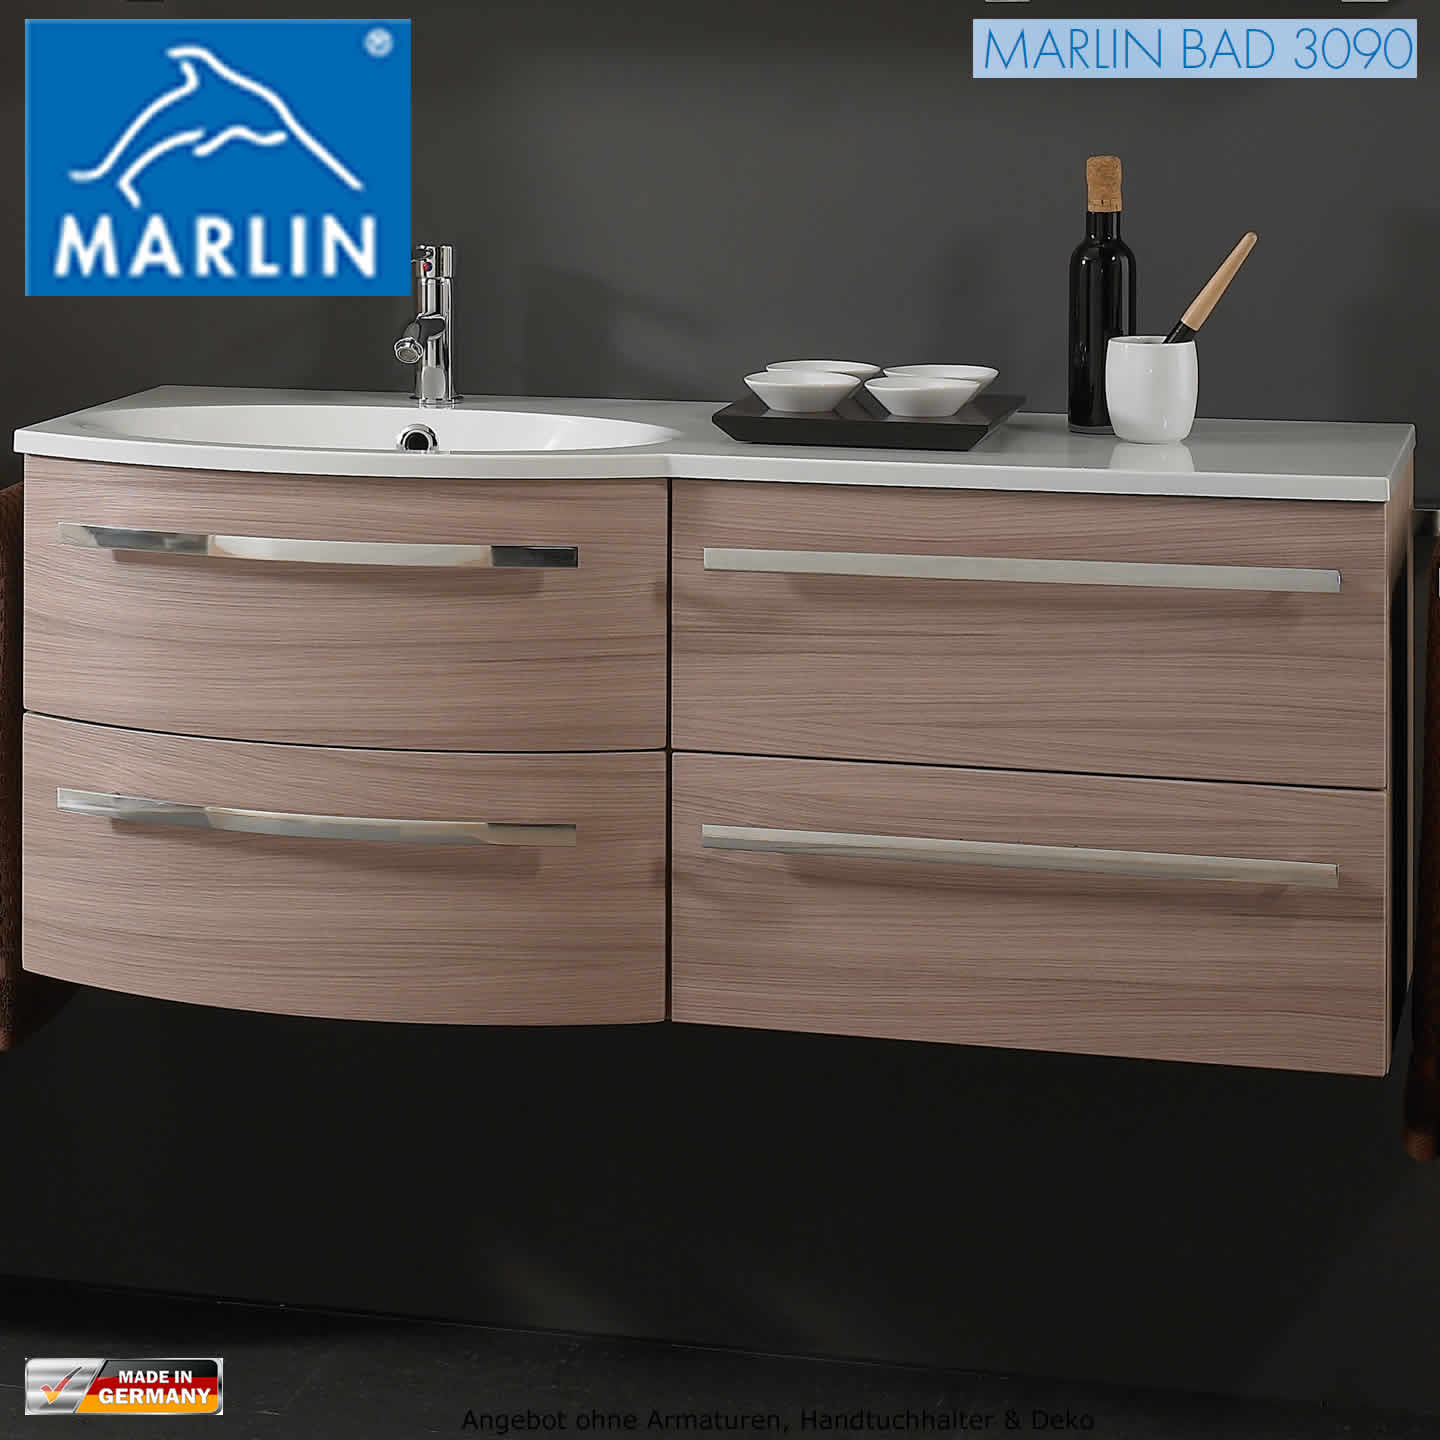 marlin 3090 cosmo 120 cm waschtisch set impulsbad. Black Bedroom Furniture Sets. Home Design Ideas